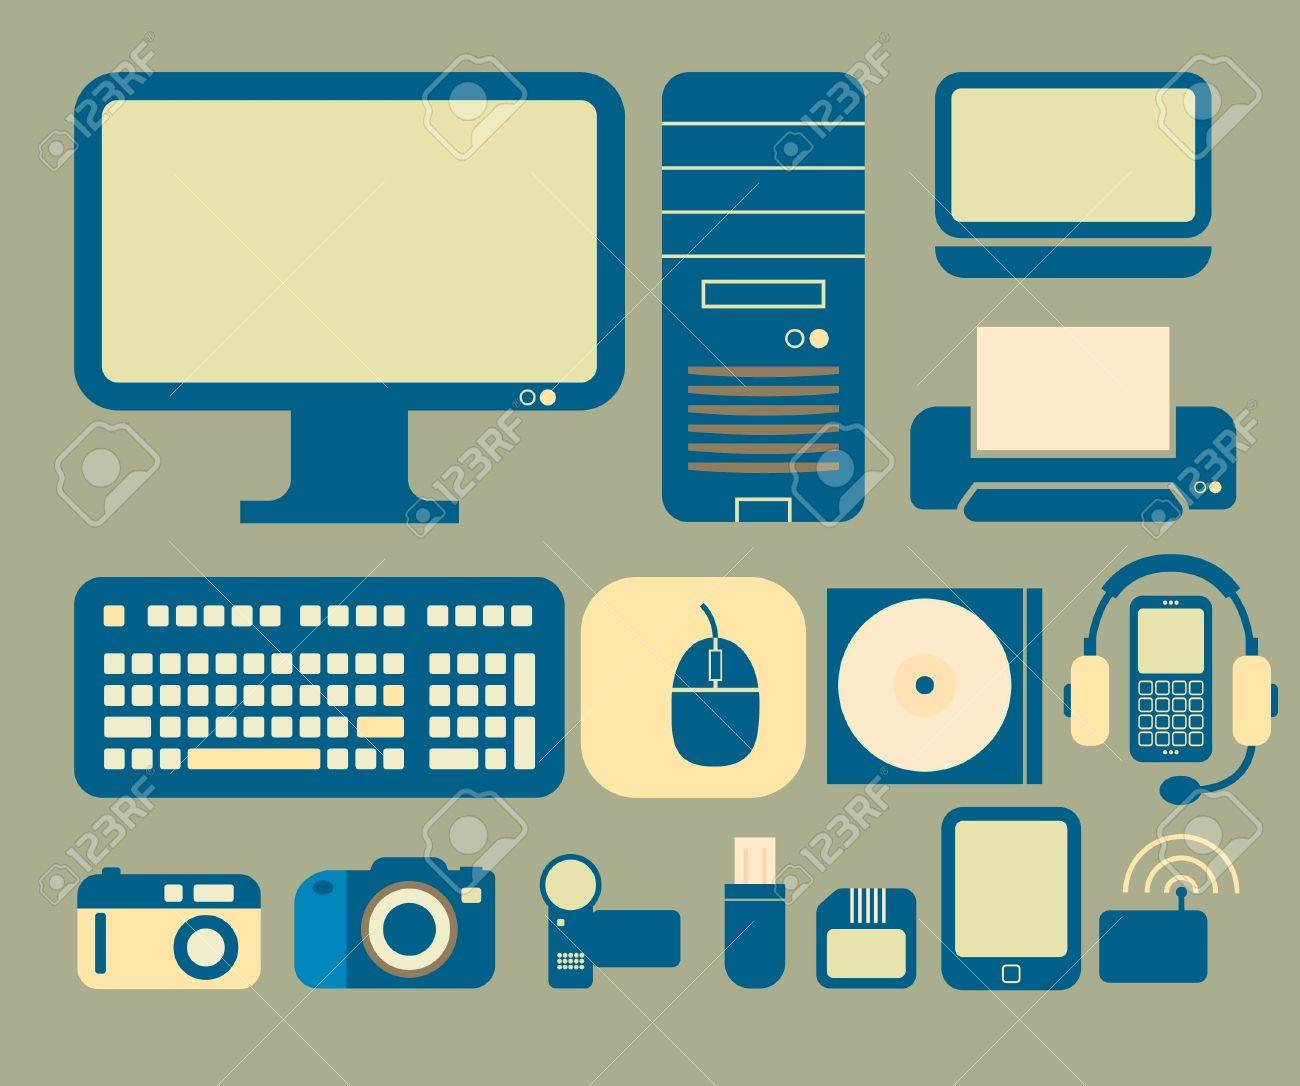 Icons With A Computer And Electronics Theme. Royalty Free Cliparts ...